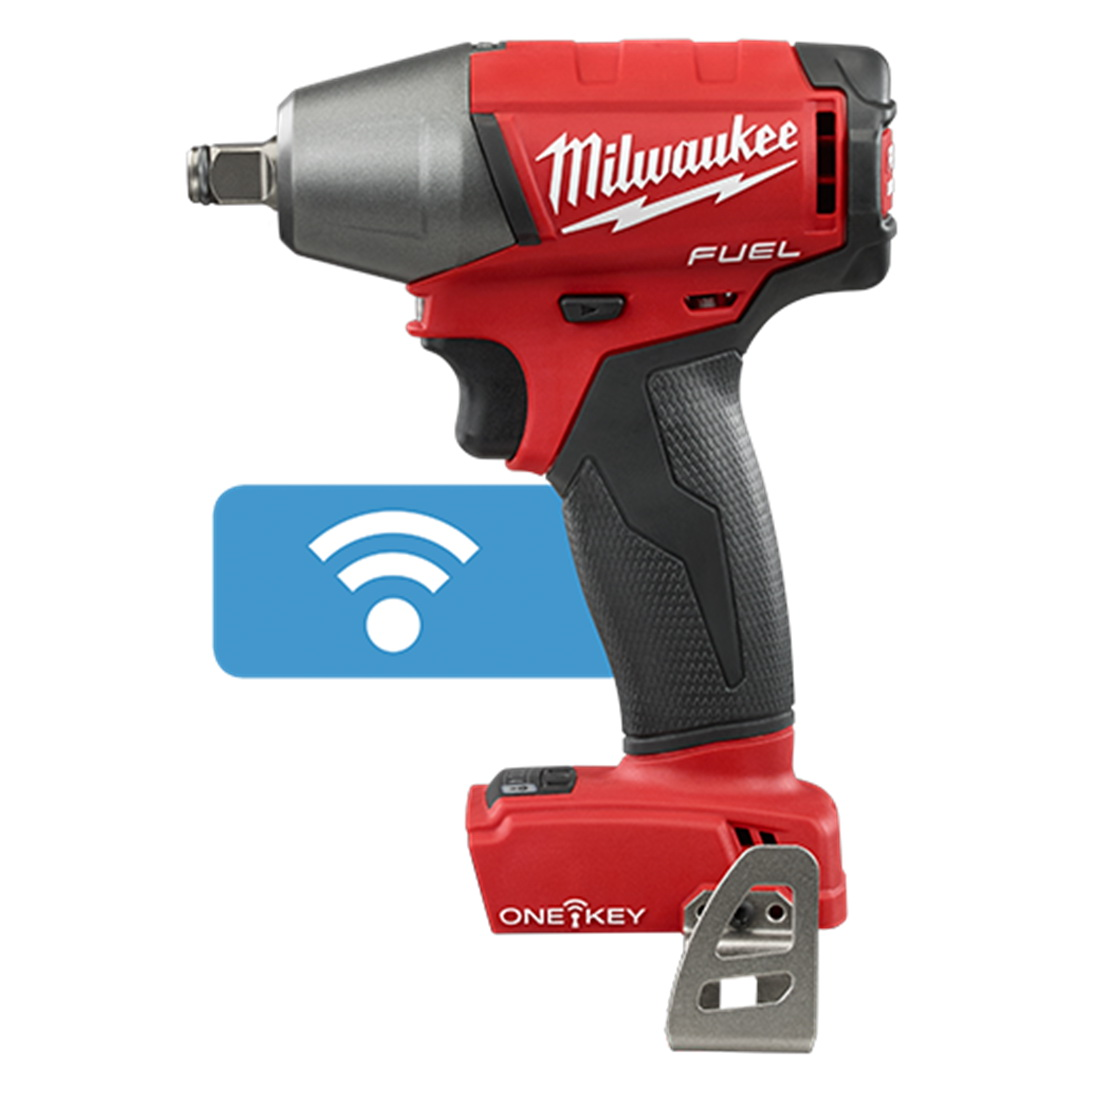 M18 FUEL ONE-KEY Cordless Impact Wrench with Friction Ring 1/2 inch